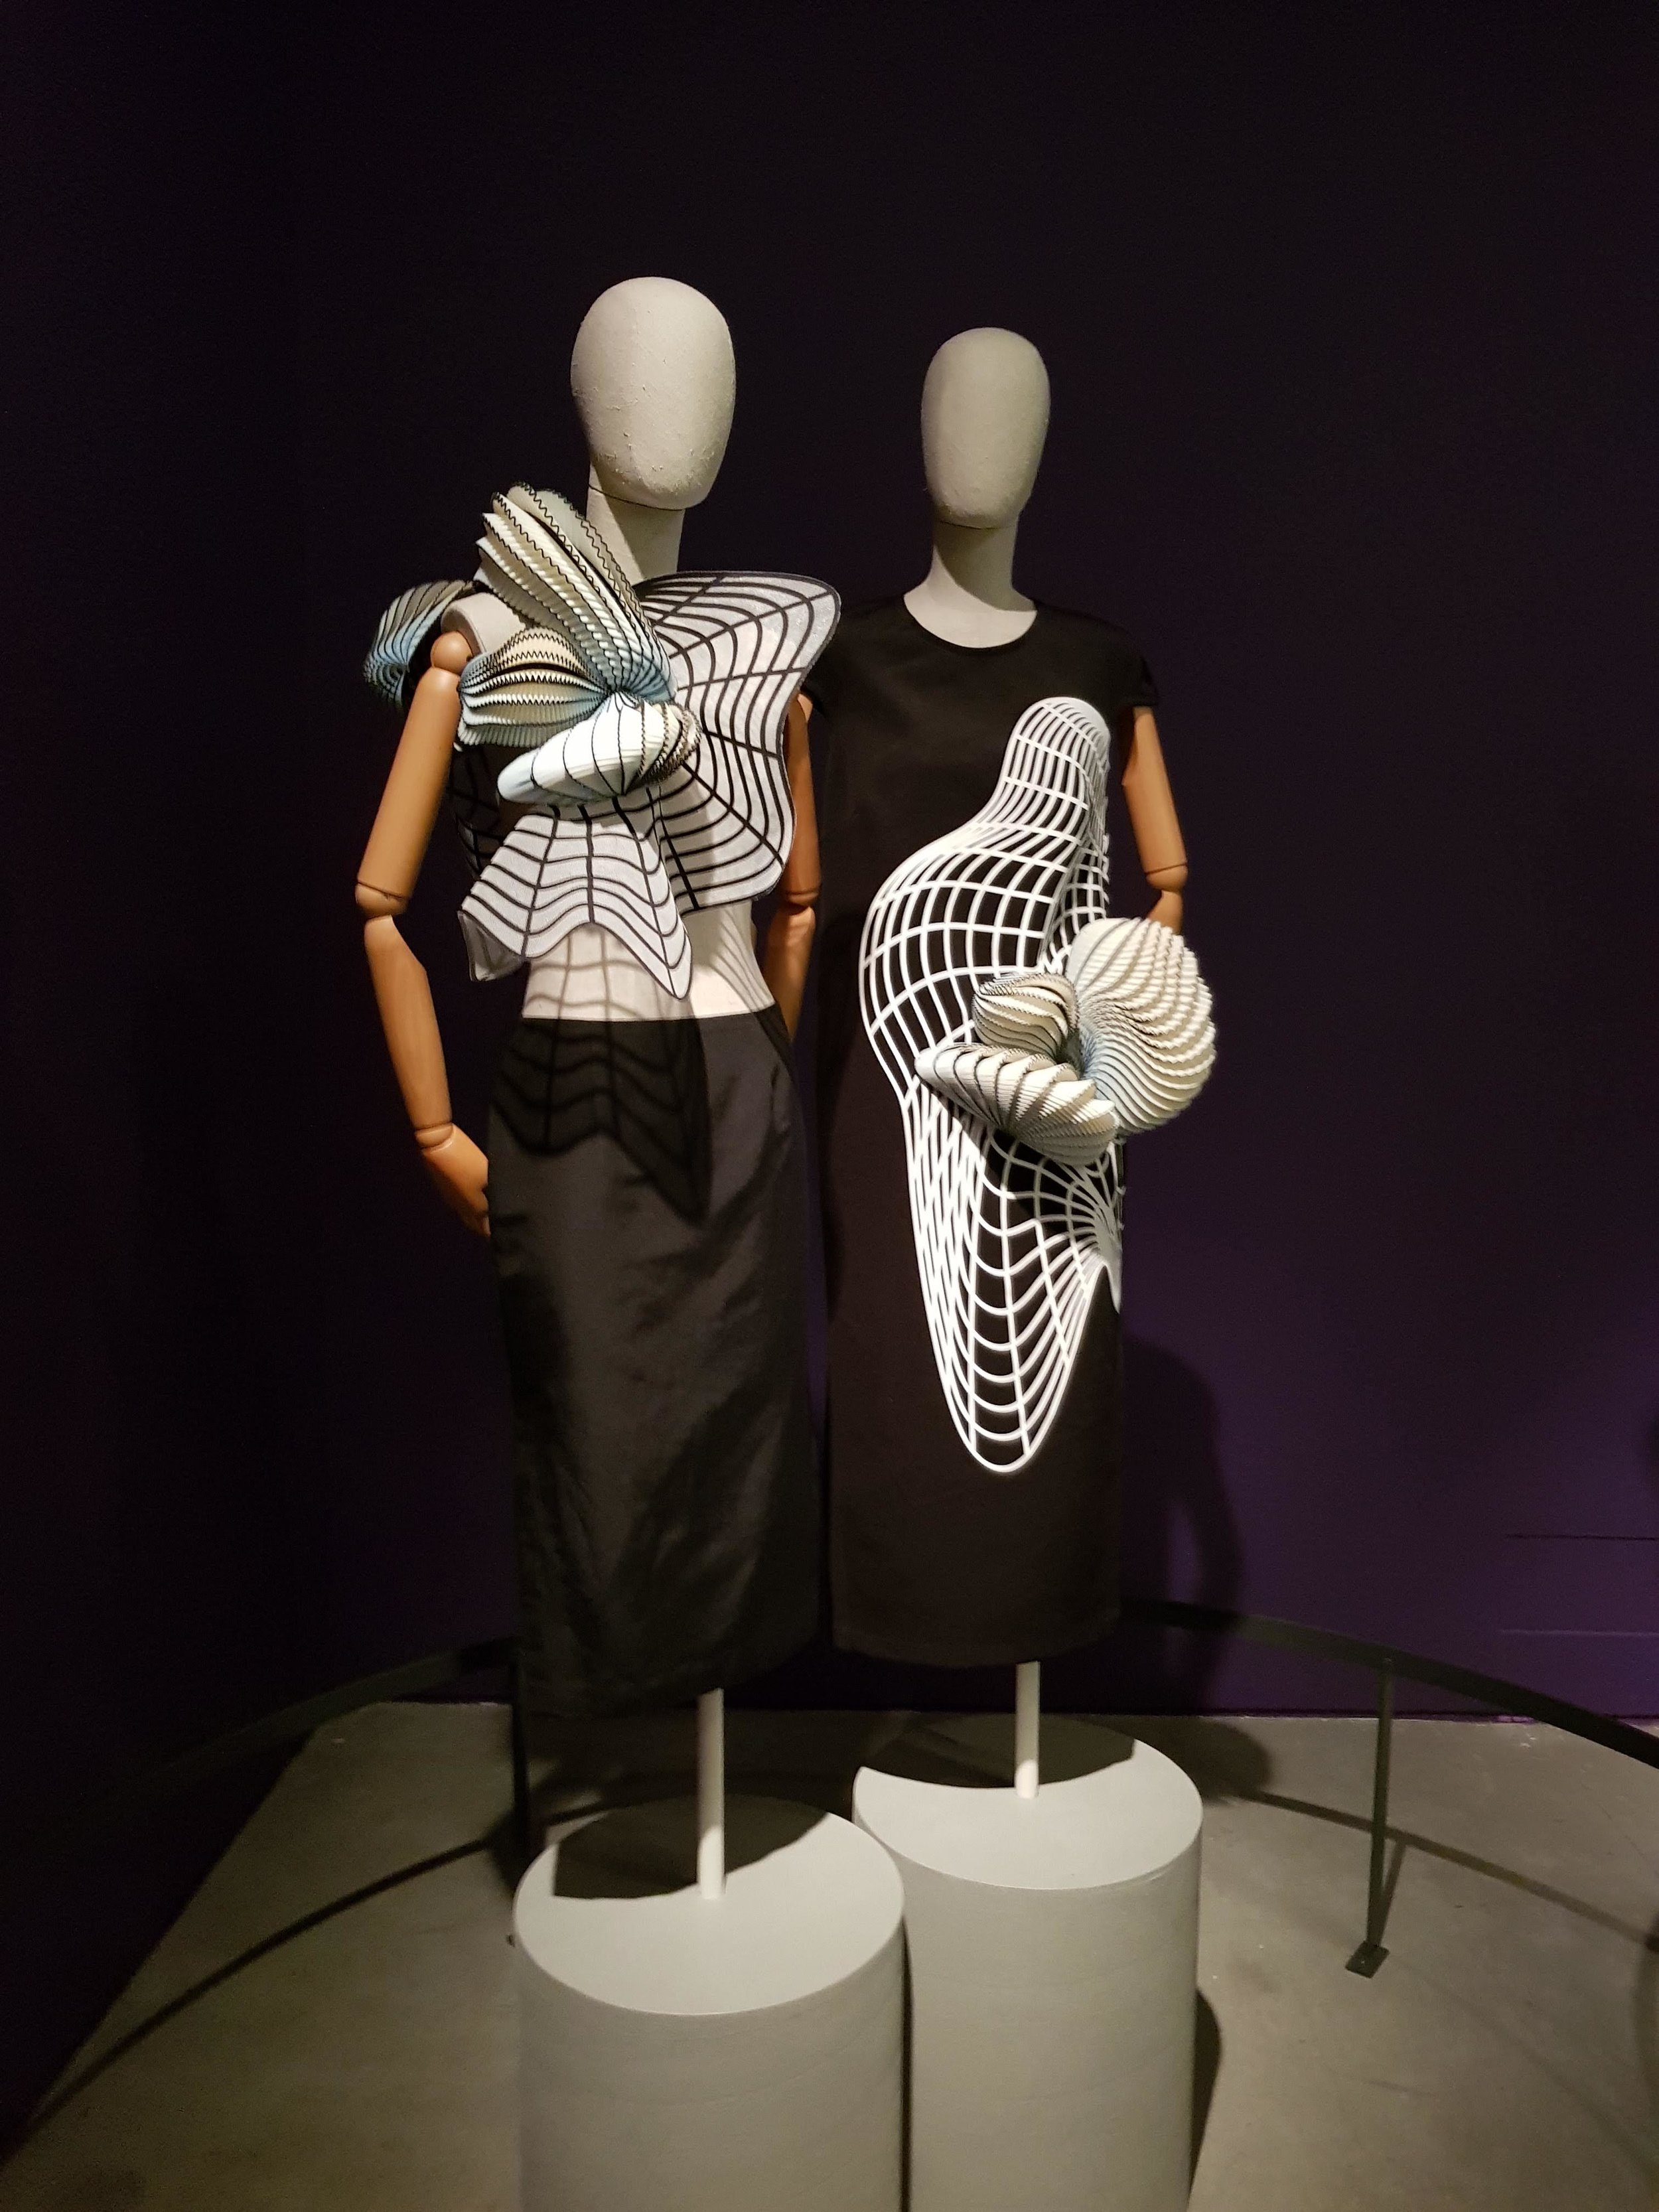 Stratasys 3D printed fashion pieces, designed by Noa Raviv, produced on Stratasys' Objet500 Connex Multi-material 3D Printer, on display at the Fashion Statements exhibition, Israel Museum.